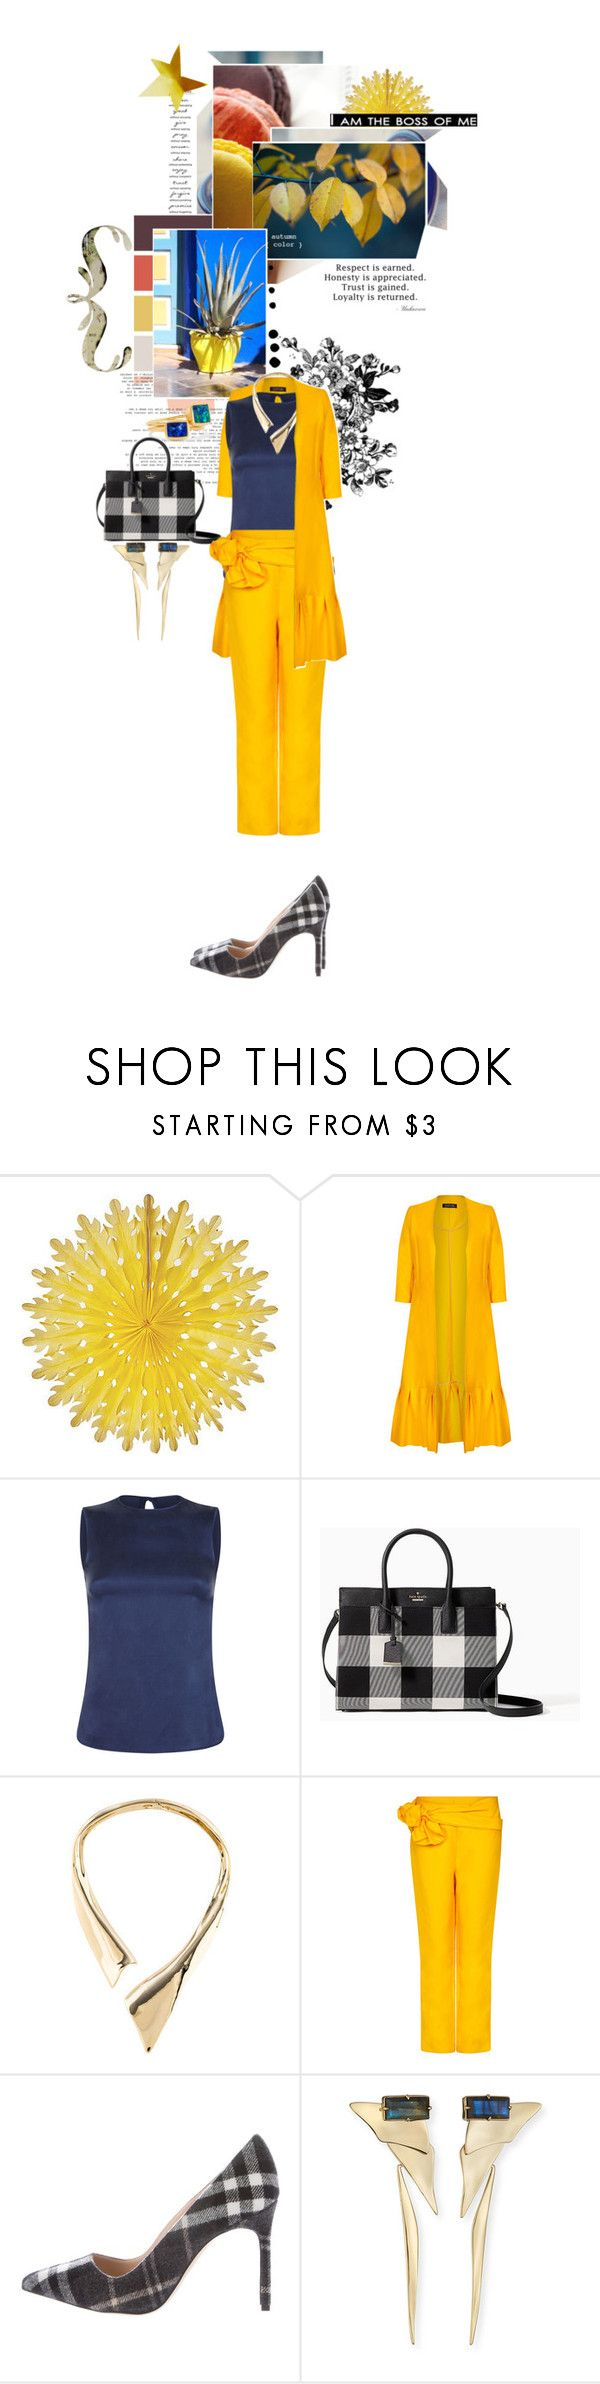 """2229.I am the boss of me"" by sylviedupuywriter ❤ liked on Polyvore featuring CO, Seed Design, Safiyaa, Kate Spade, Alexis Bittar, Manolo Blahnik and Pippa Small"